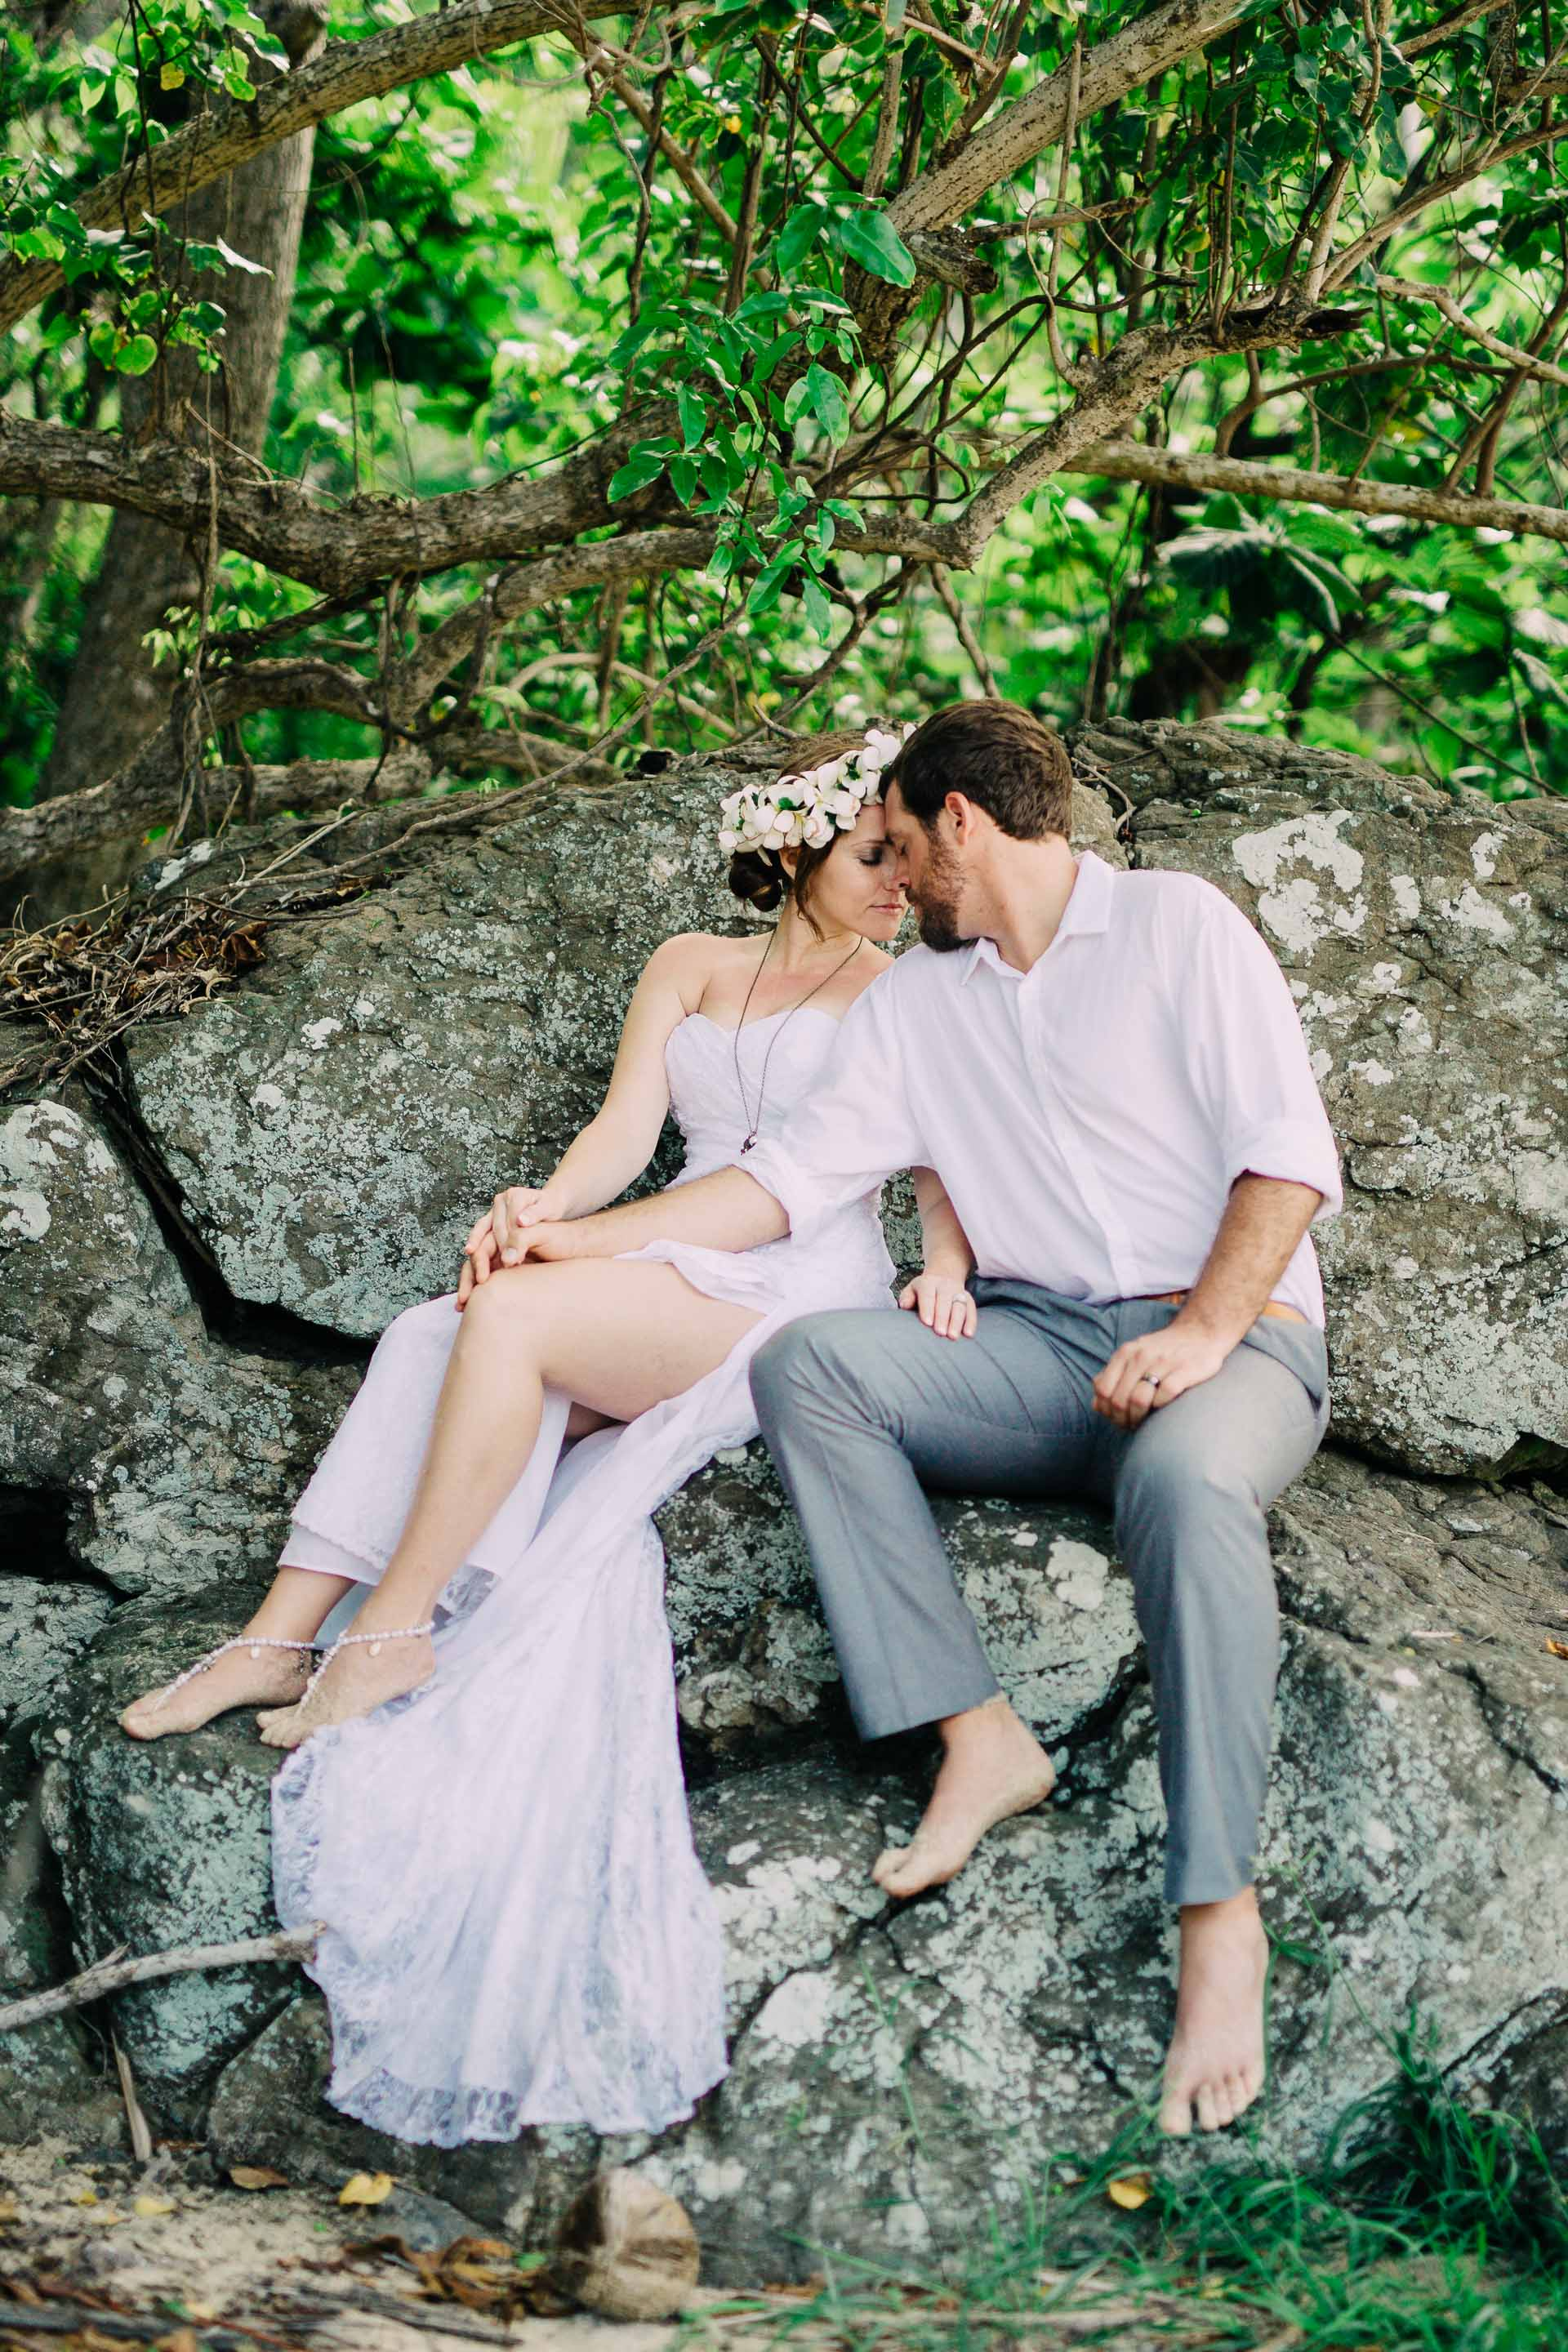 The newlyweds sitting on a rock together in the bush